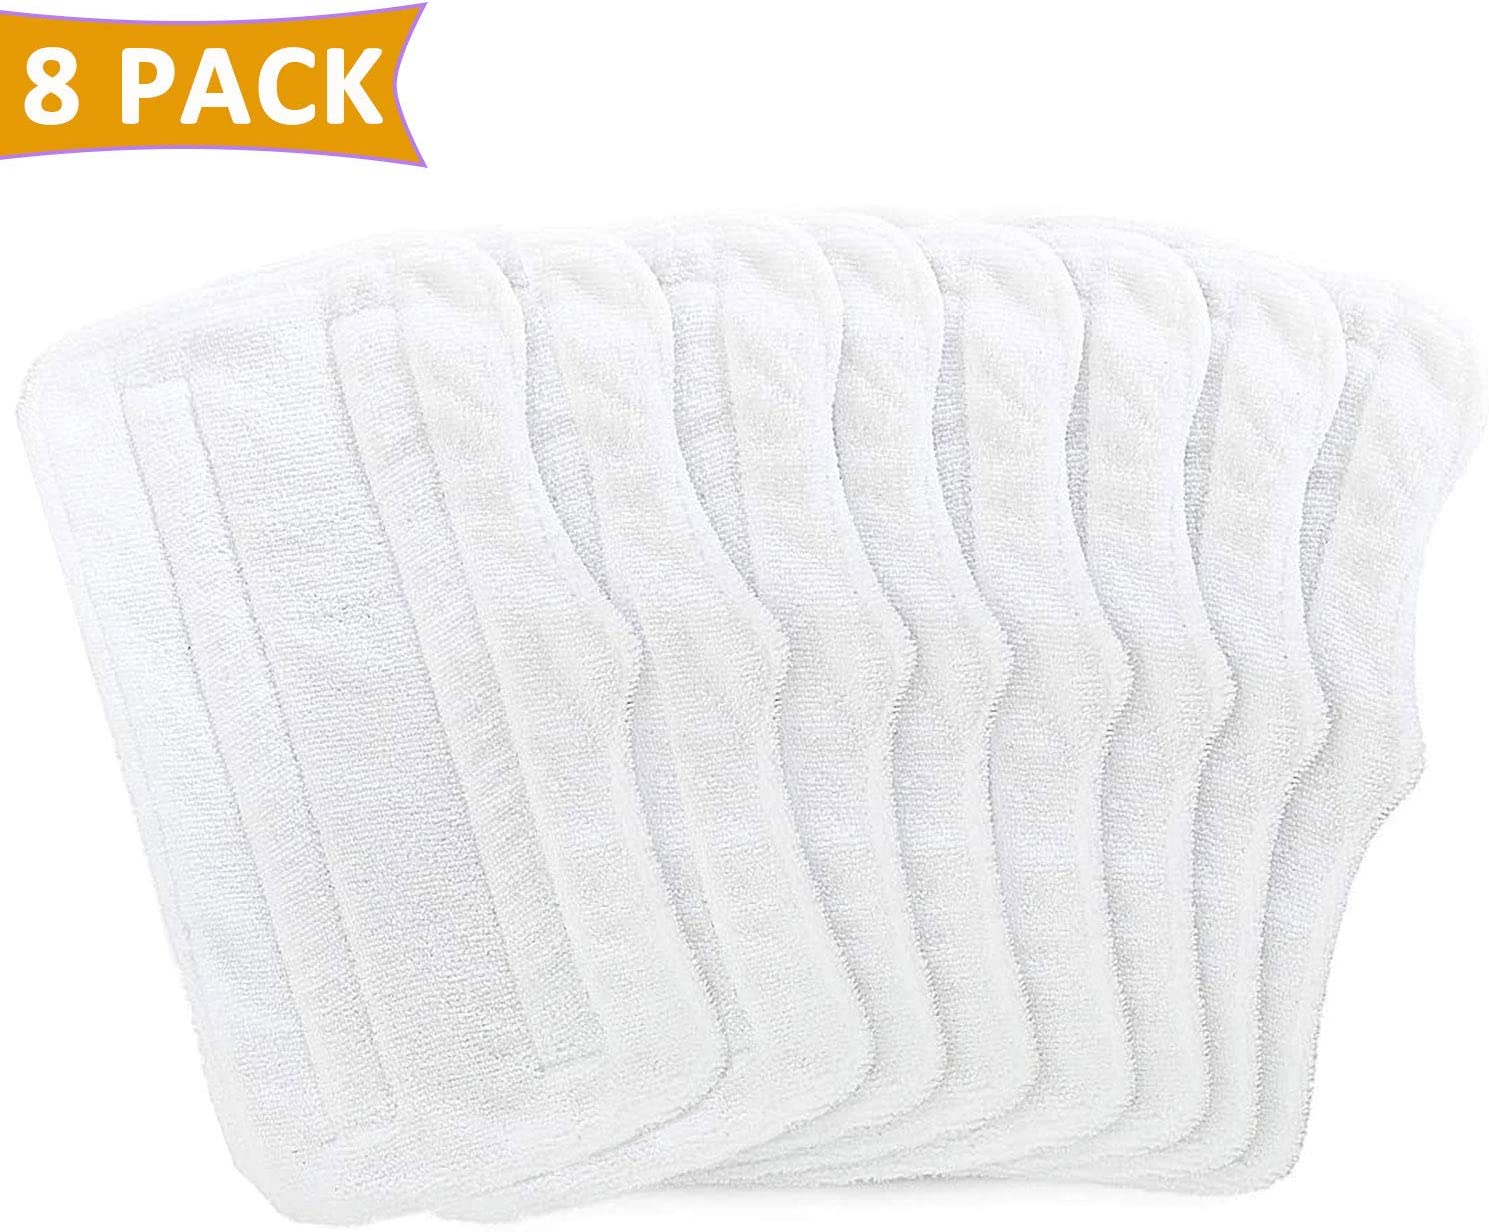 FFsign 8 Pack Steam Mop Pads for Shark Light and Easy Steam Mop Steam Cleaners S3101 S3101n2 S3250 S3251 SK460 SK410 SK435CO SK140 SK141, 8 Pcs Washable Microfiber Cleaning Steamer Pads